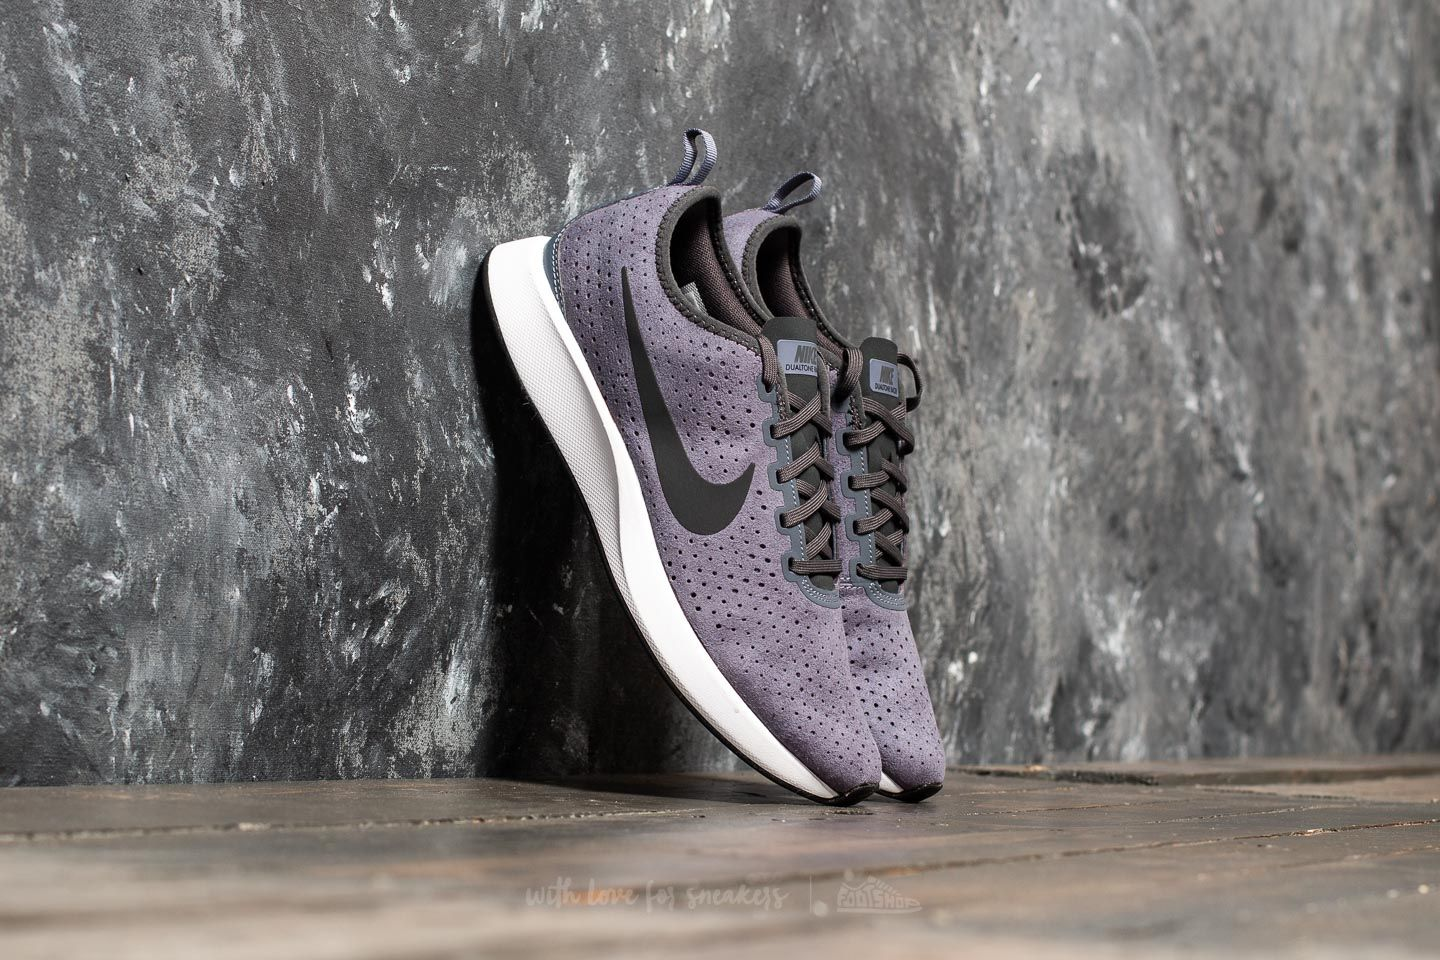 Nike Dualtone Racer Premium Light Carbon/ Anthracite-White